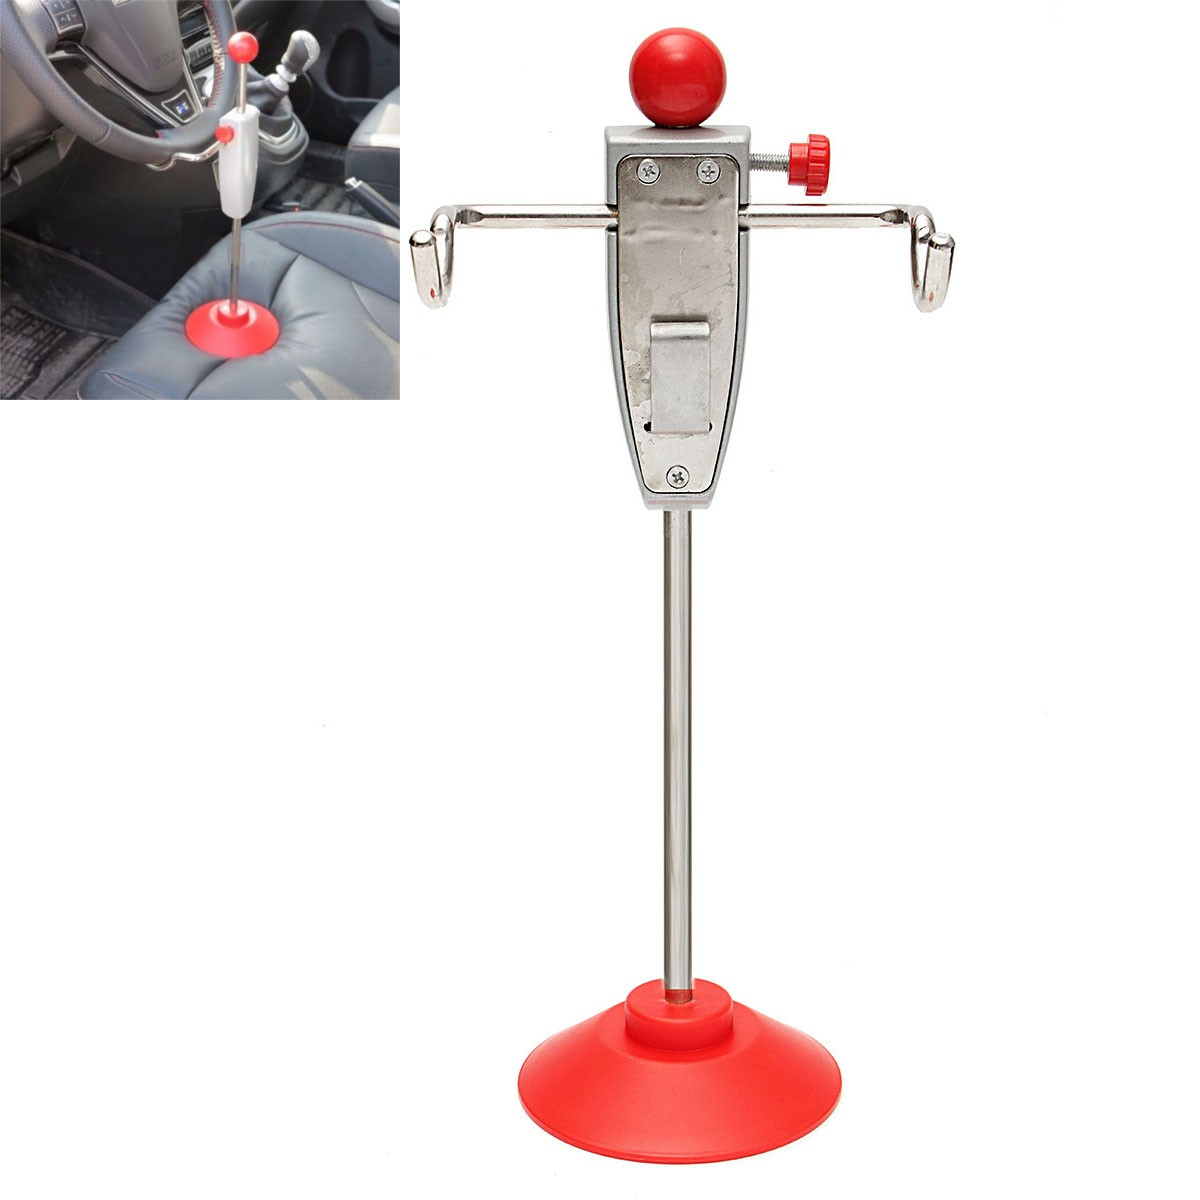 14.5 Inch Car Alignment Rack Truck Van Steering Wheel Leveling Holder Stand Tool System  ...